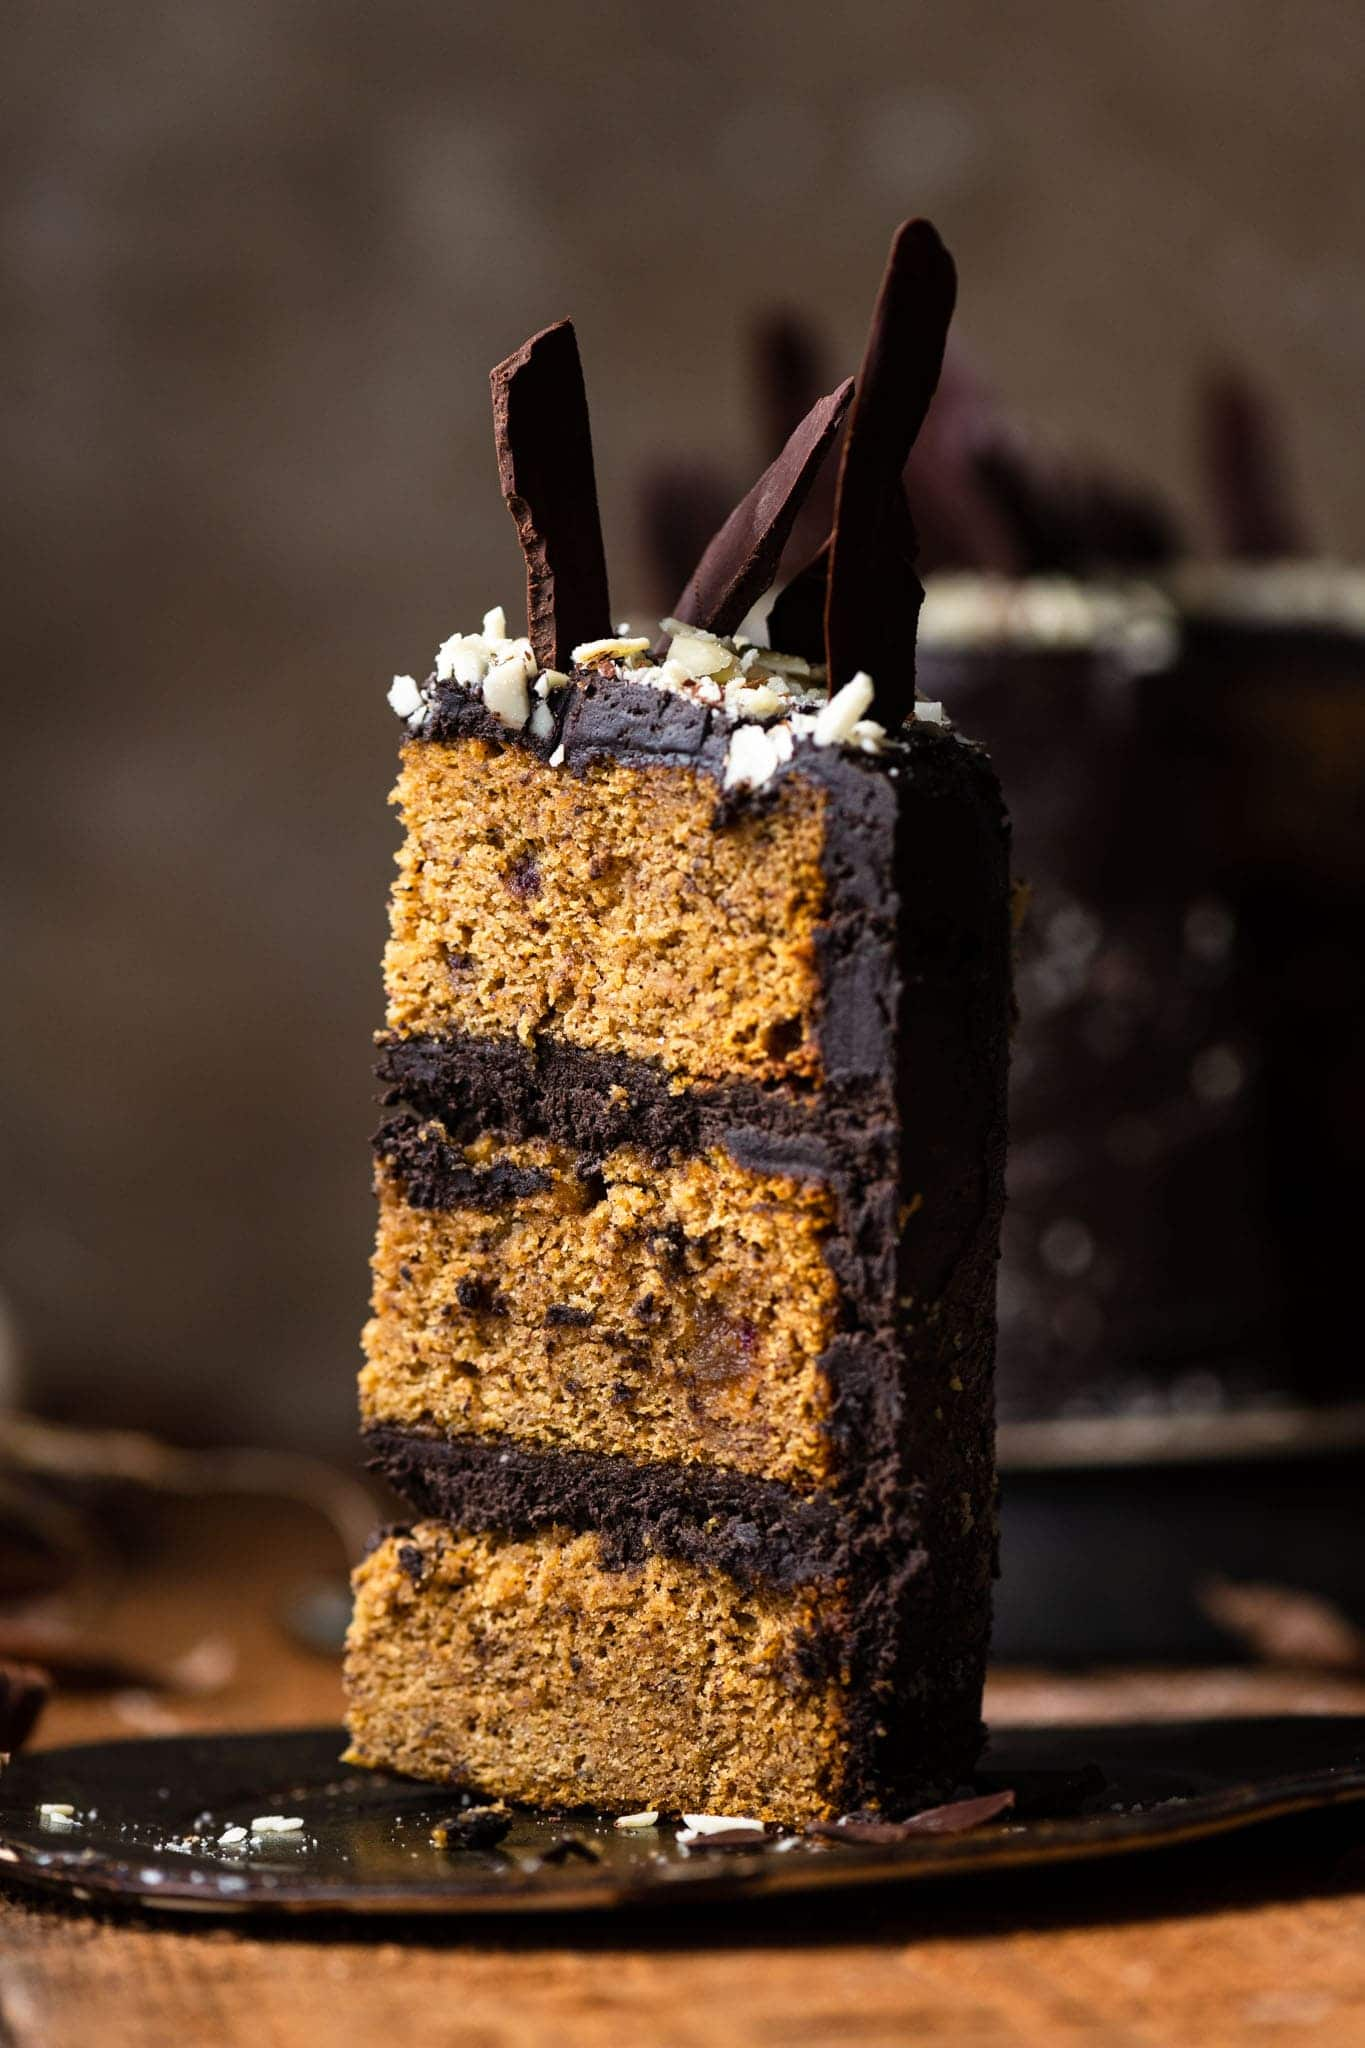 Chocolate Pumpkin Cake with hazelnuts, dates, and chocolate shards